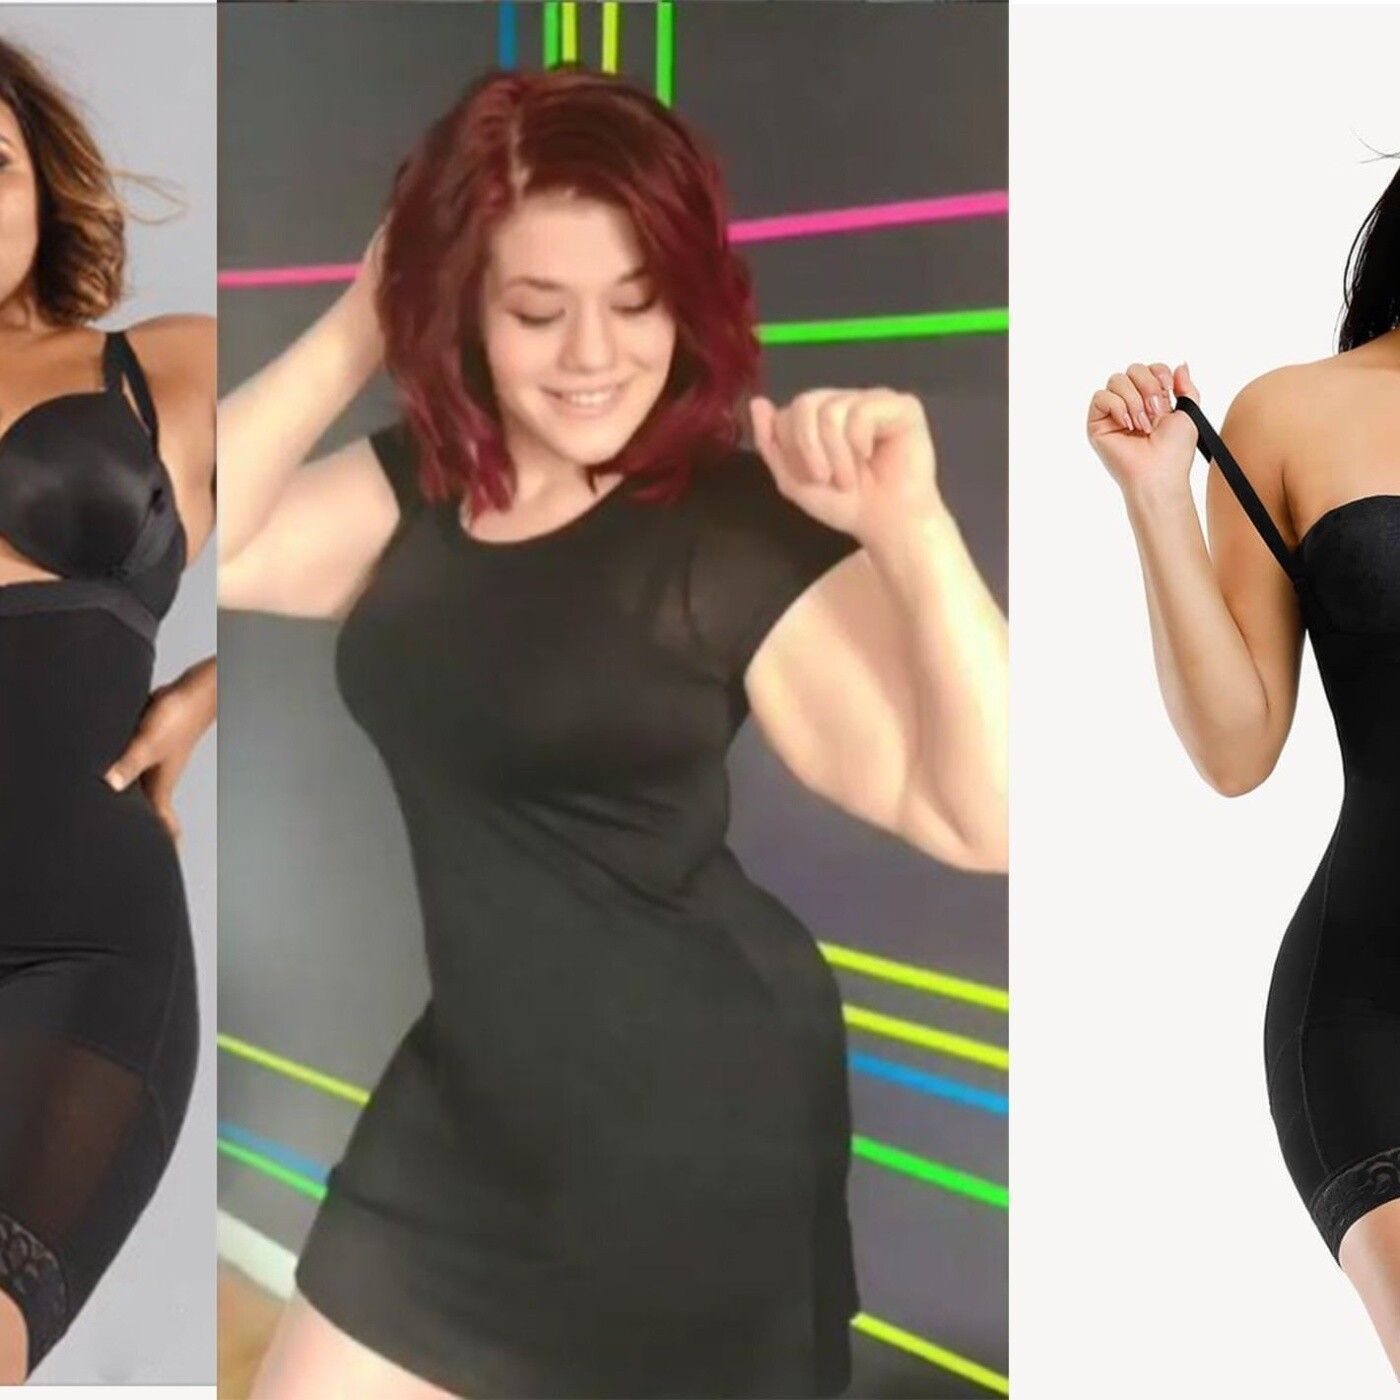 Shapellx Before and After   Shapewear and Waist Trainer Results